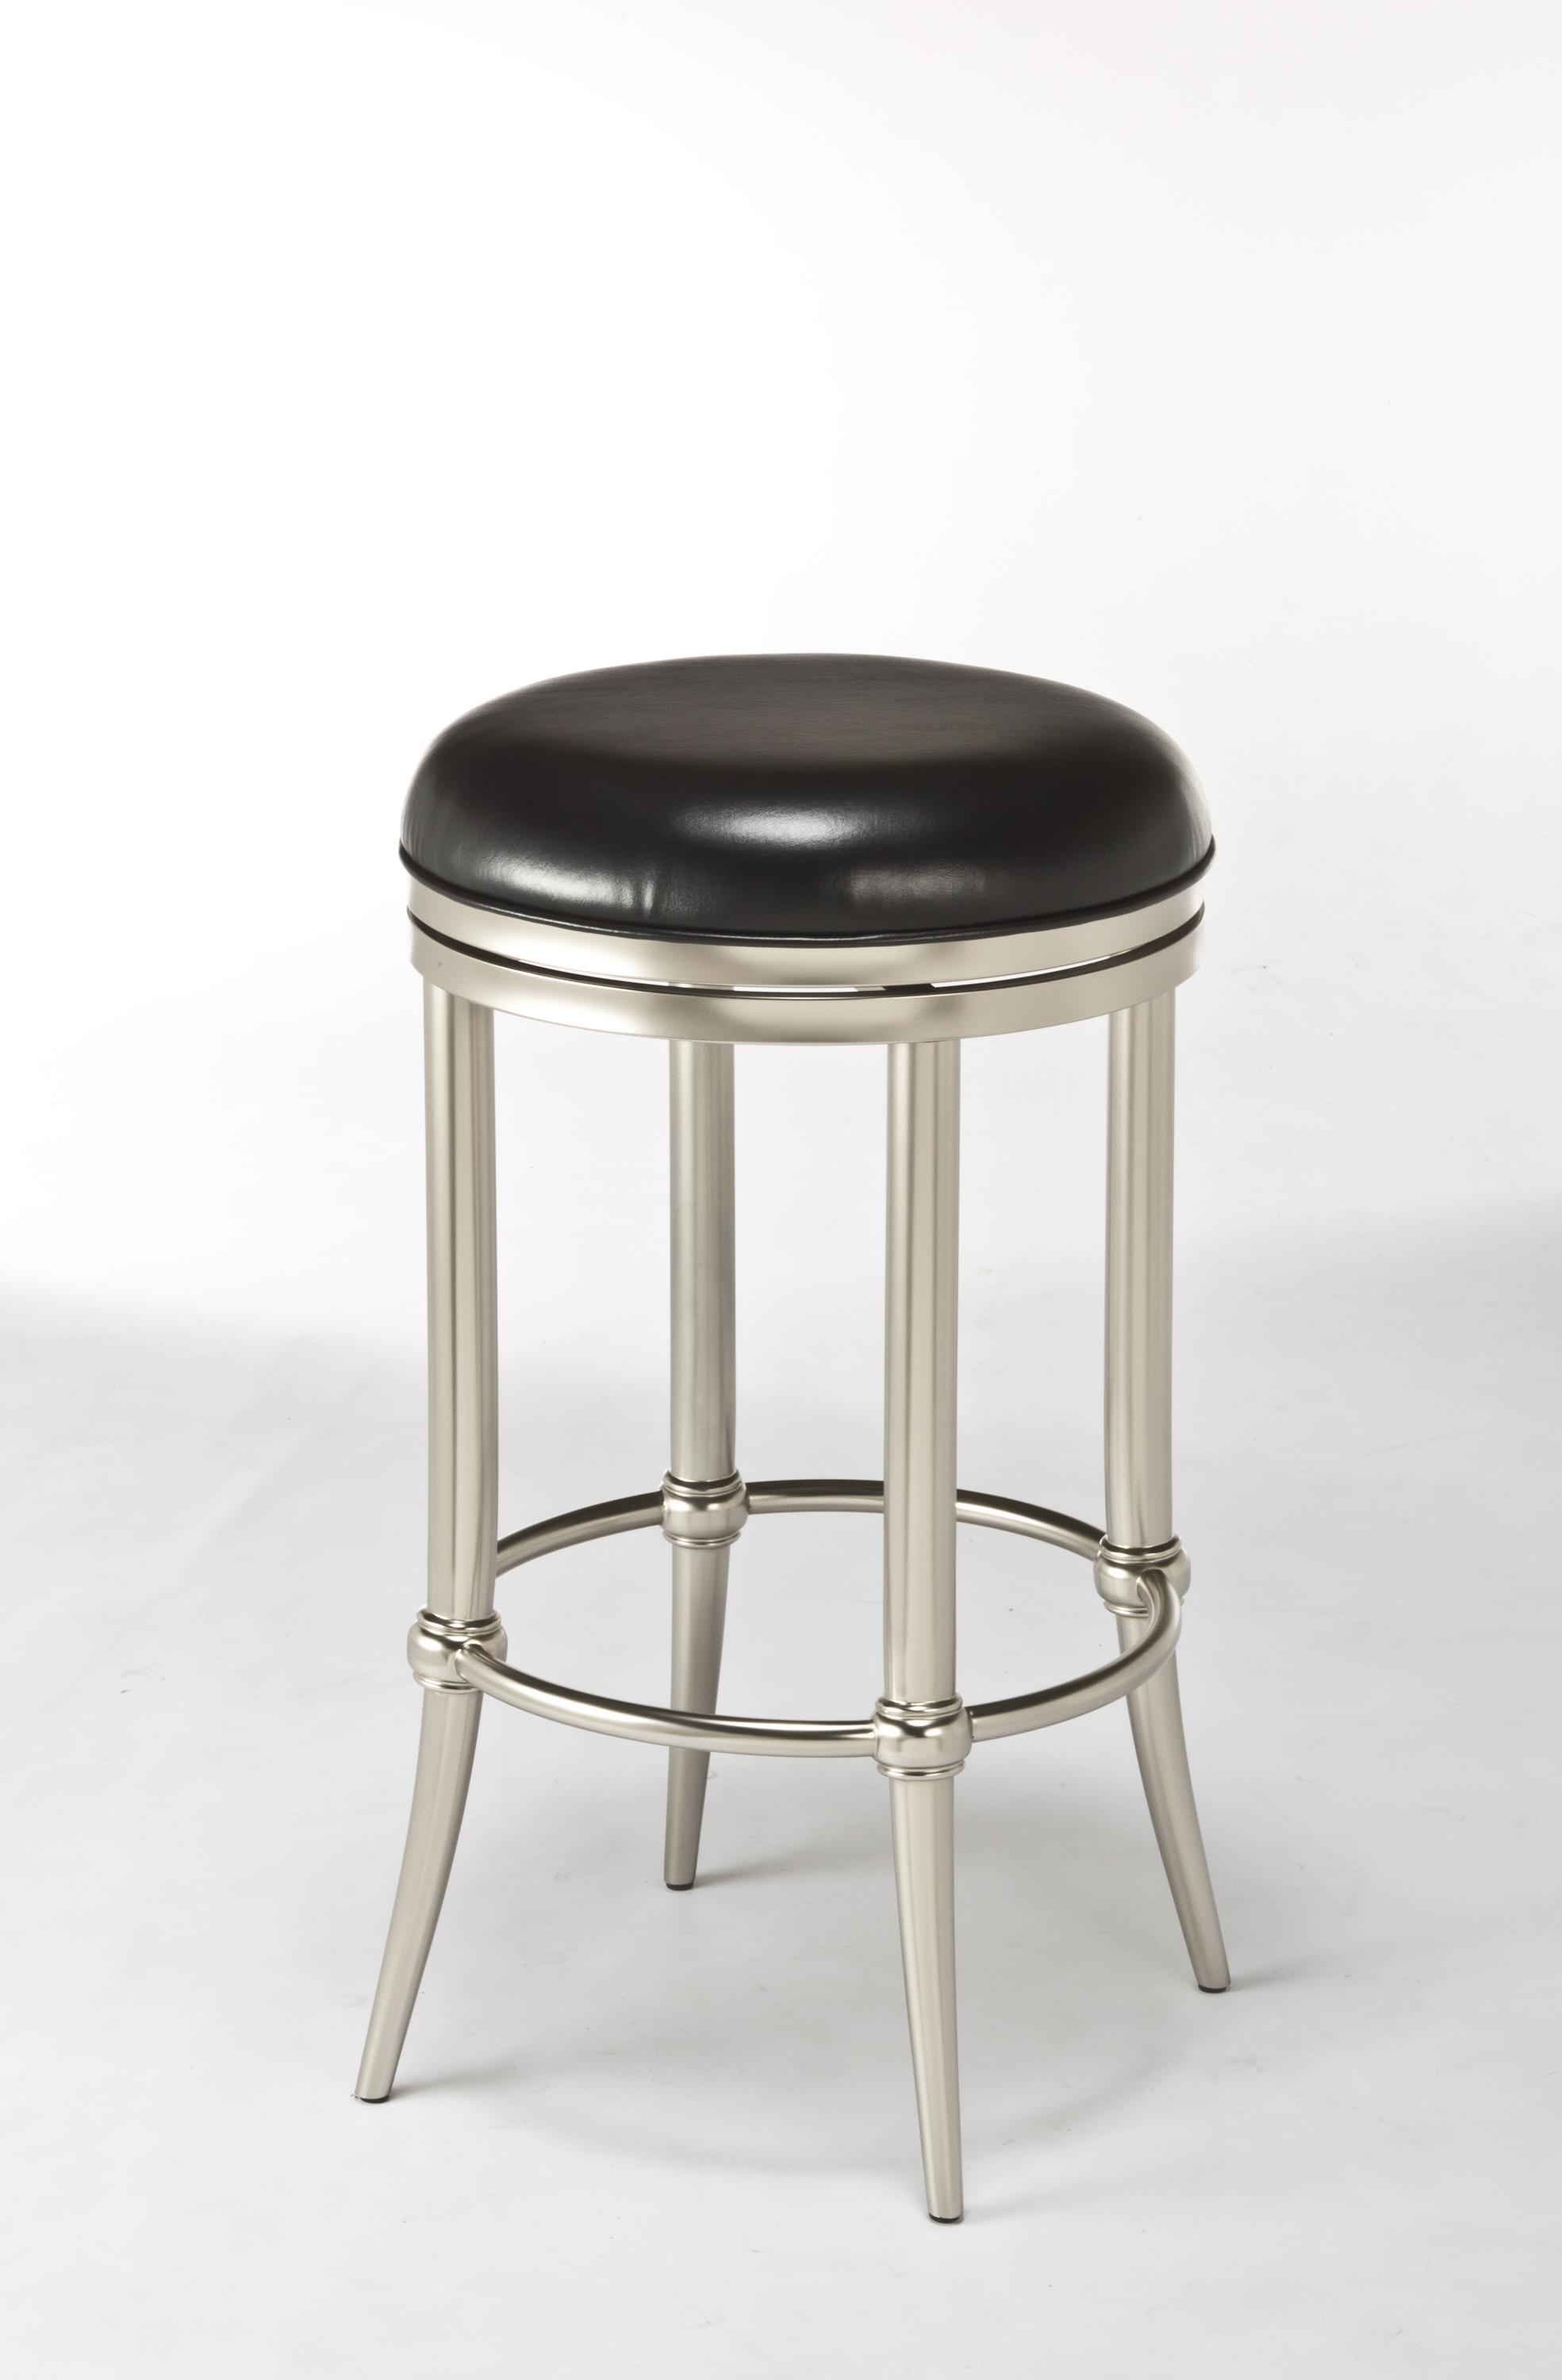 Backless Bar Stools Cadman Backless Counter Stool by Hillsdale at Novello Home Furnishings